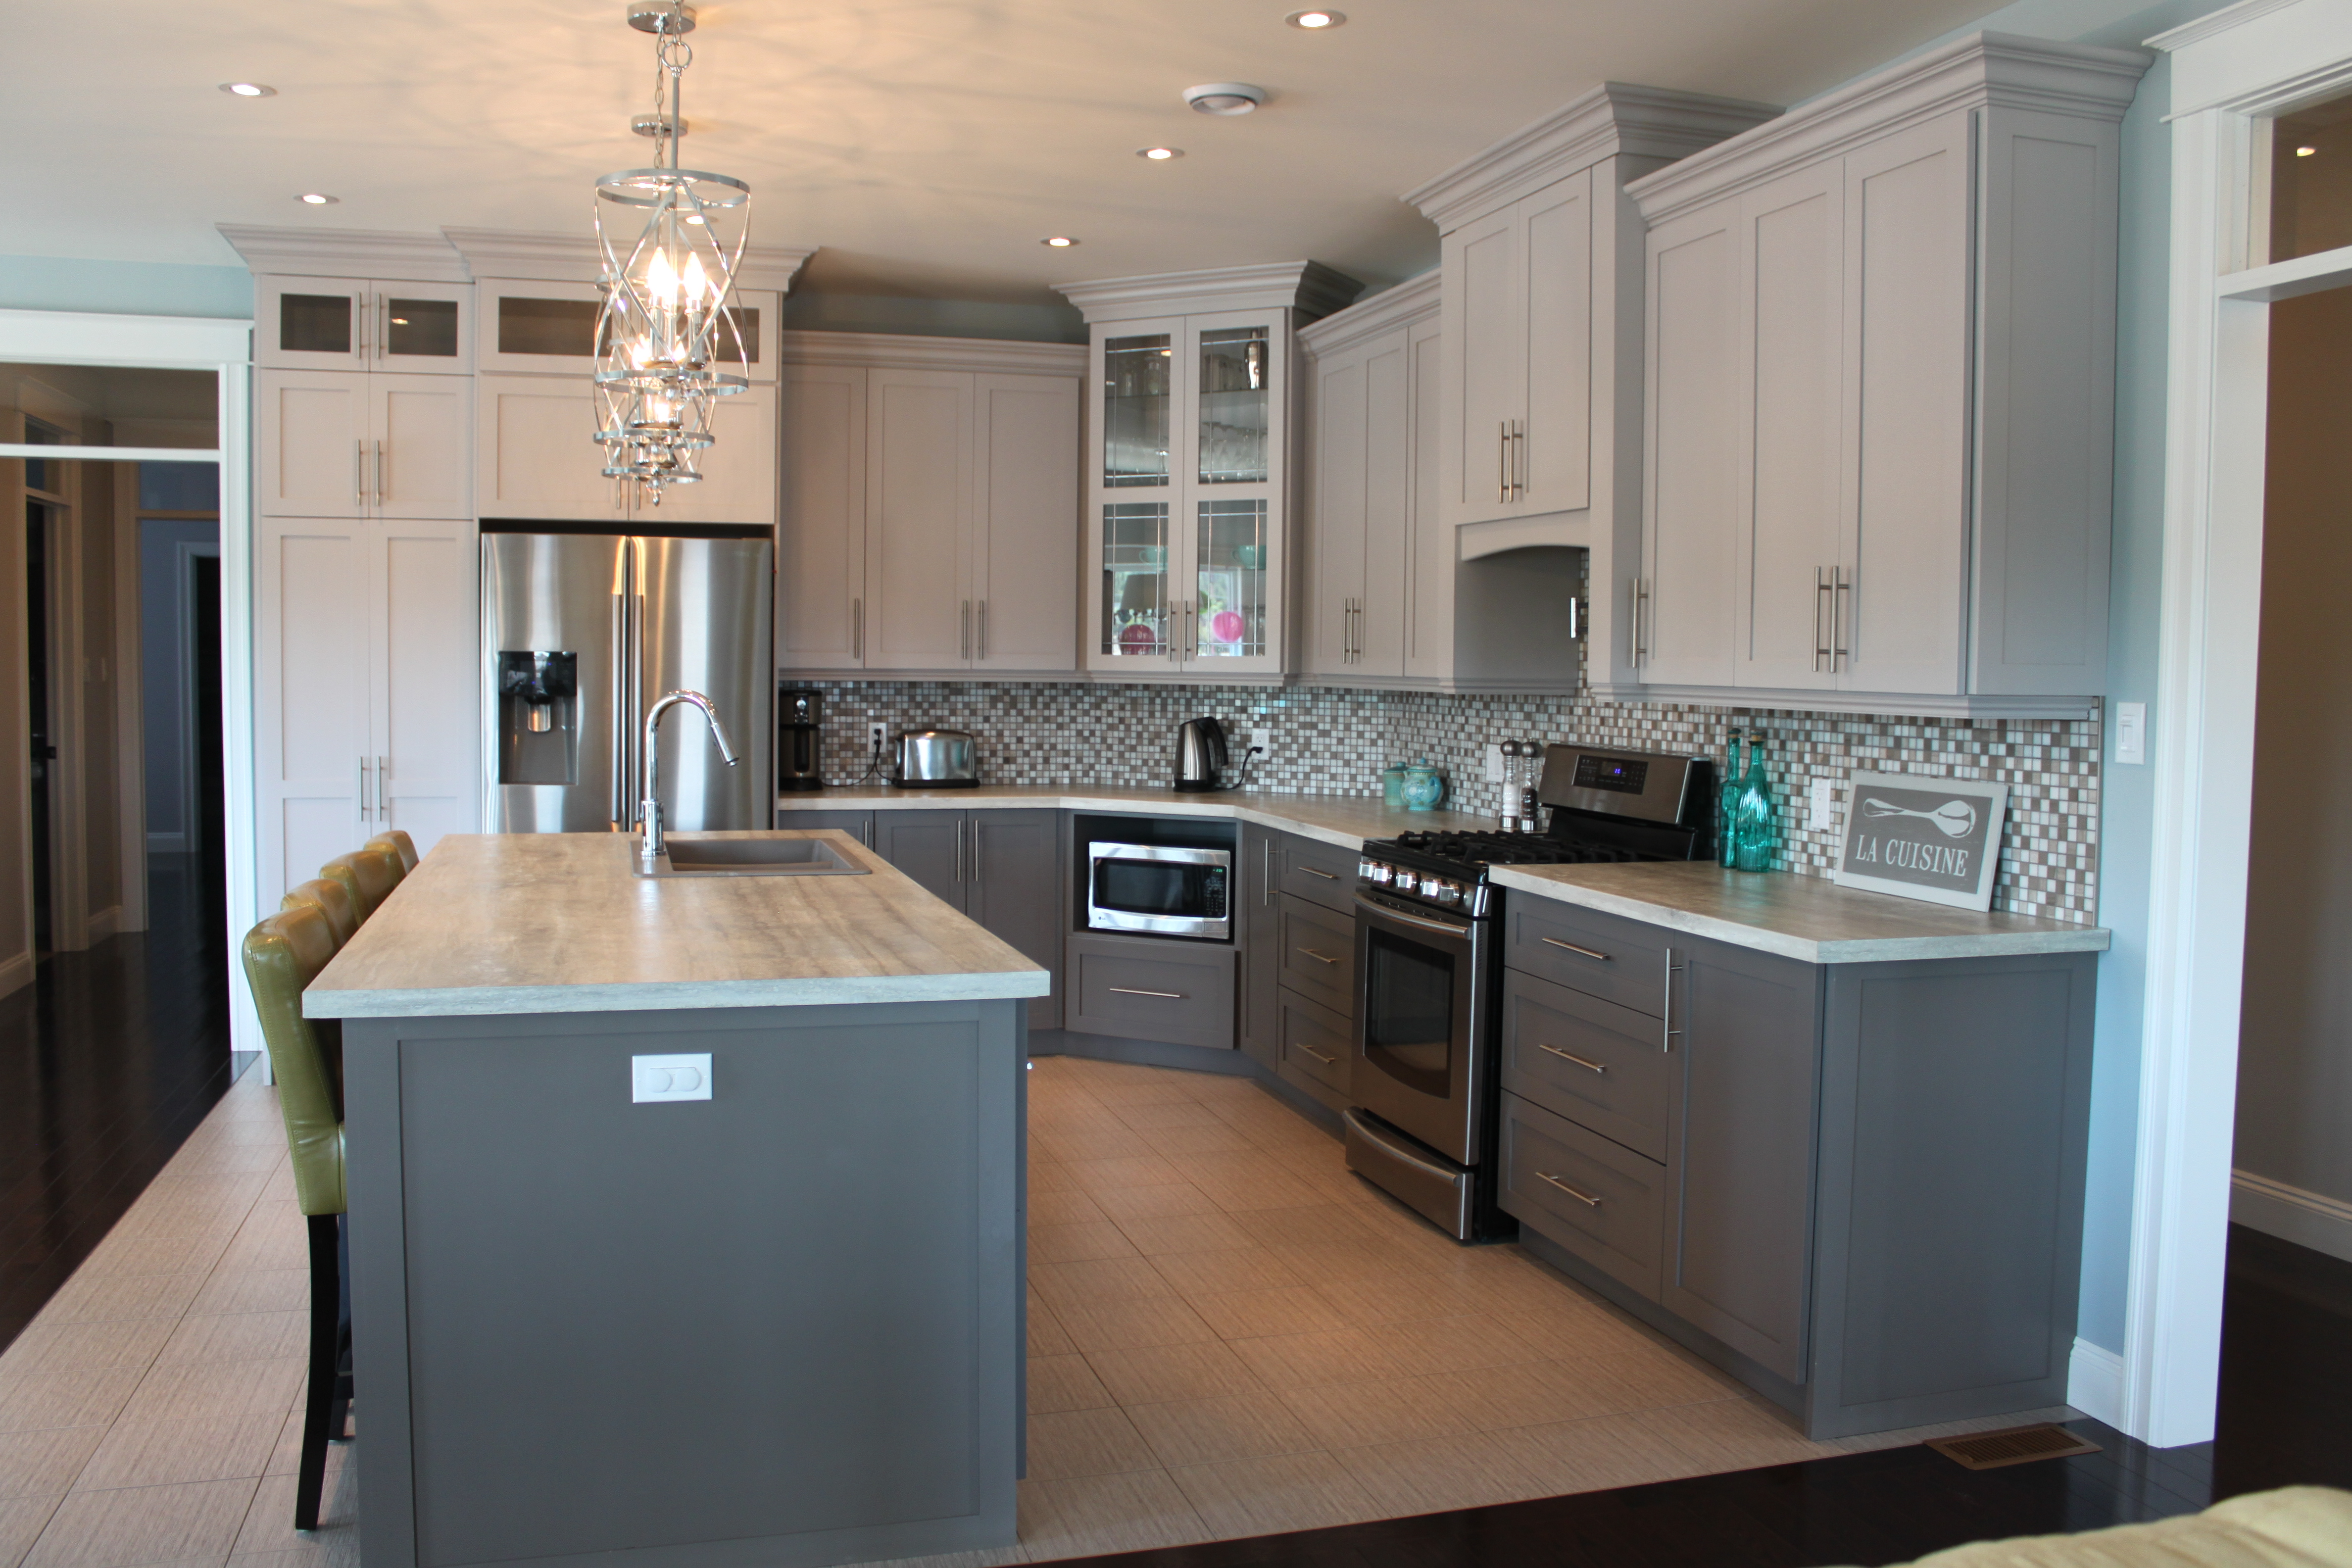 Painted Two Tone Kitchen - Signature Kitchens and Baths